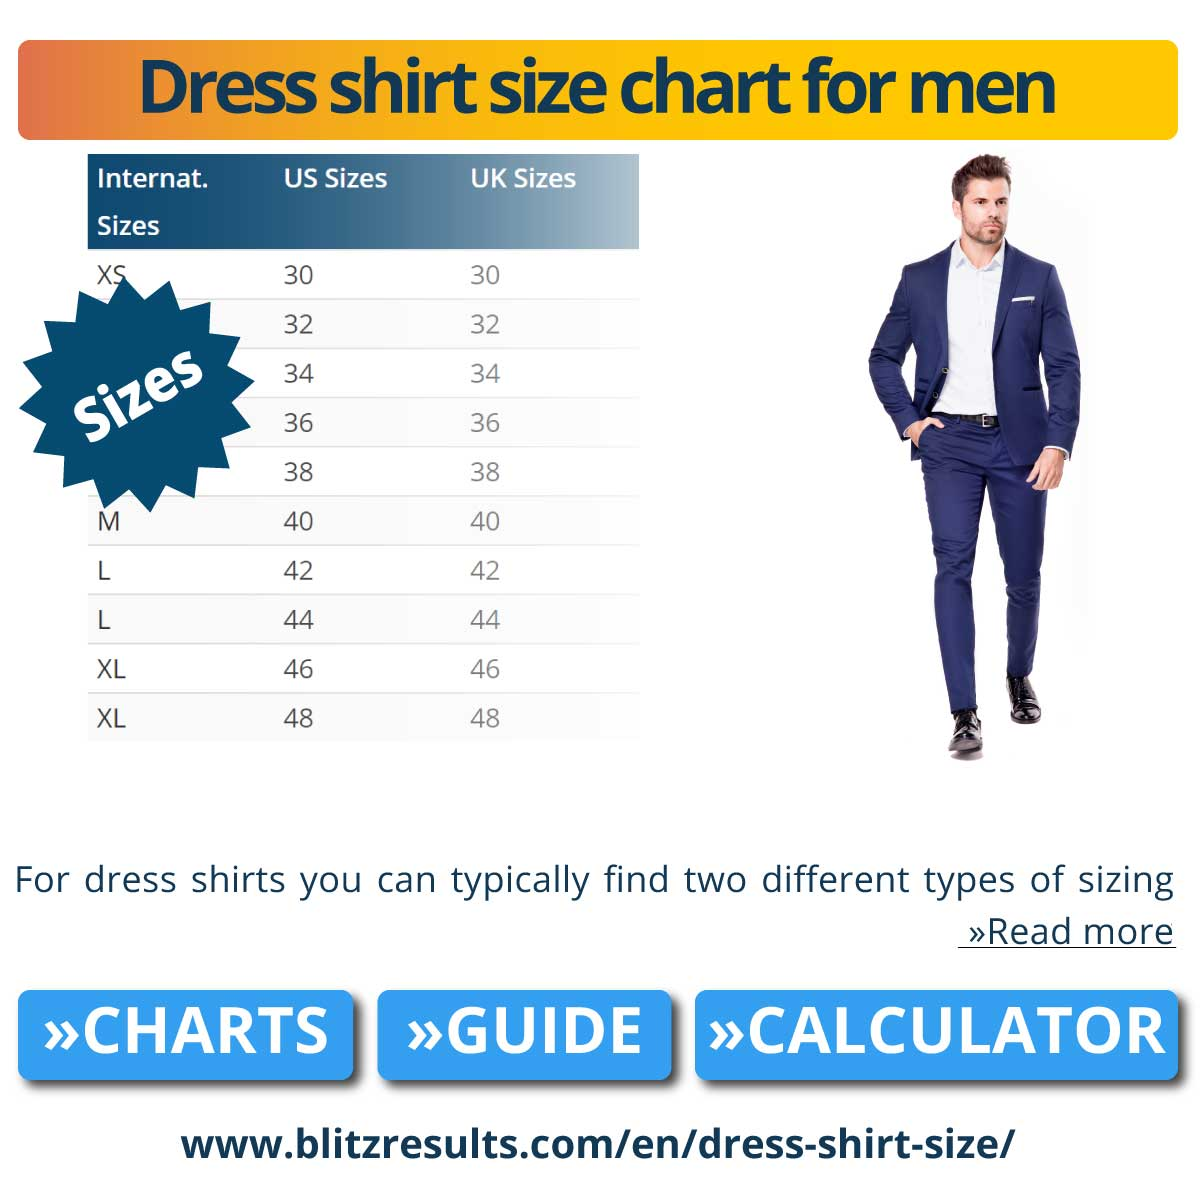 Dress shirt size chart for men